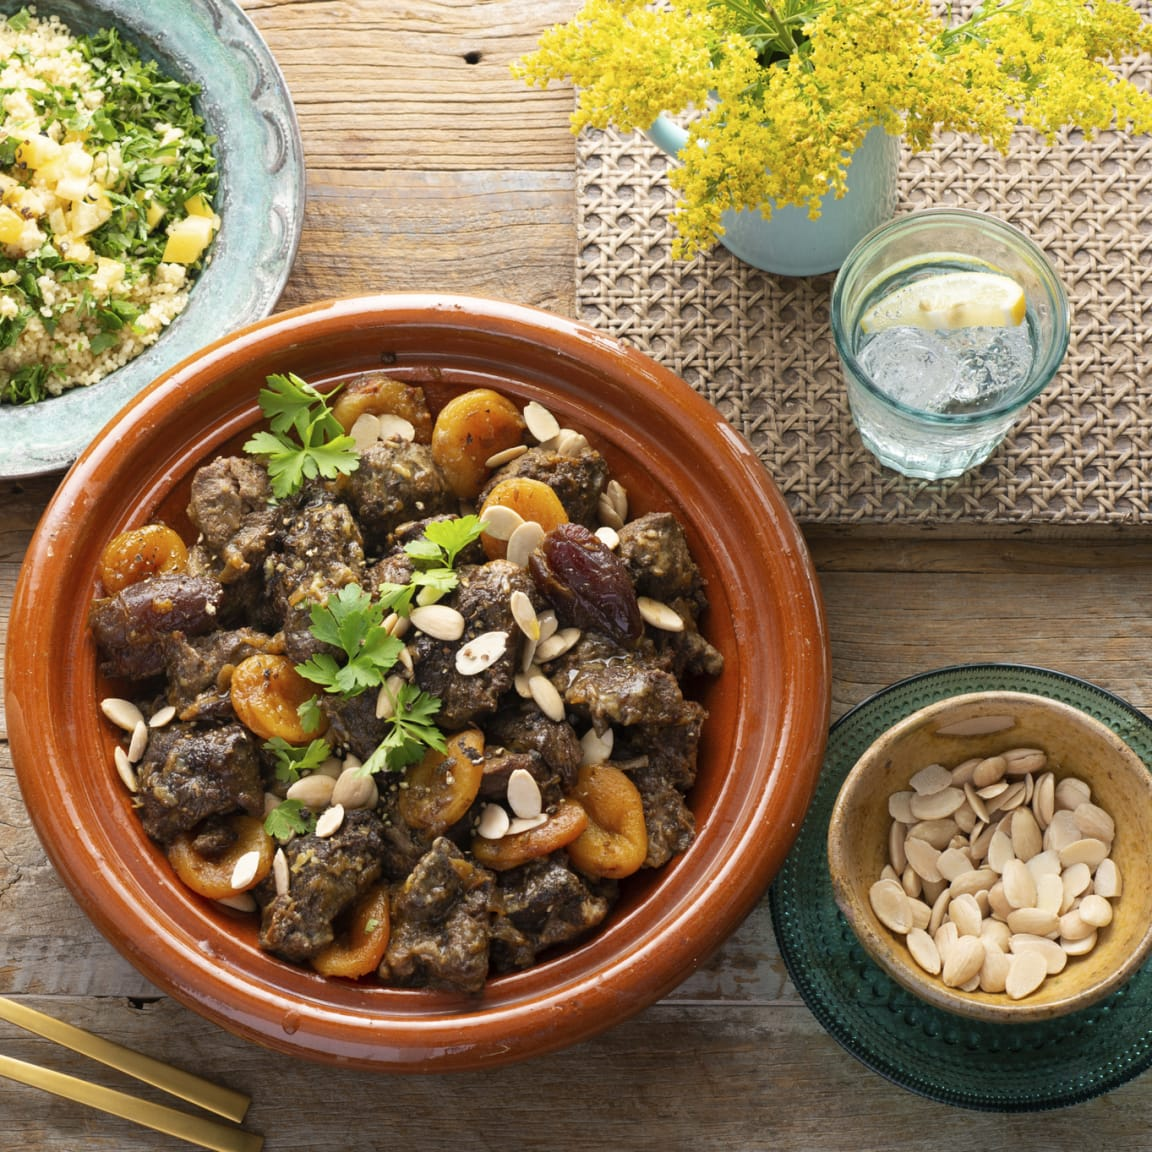 Recipe: Lamb, date and apricot tagine with herbed couscous